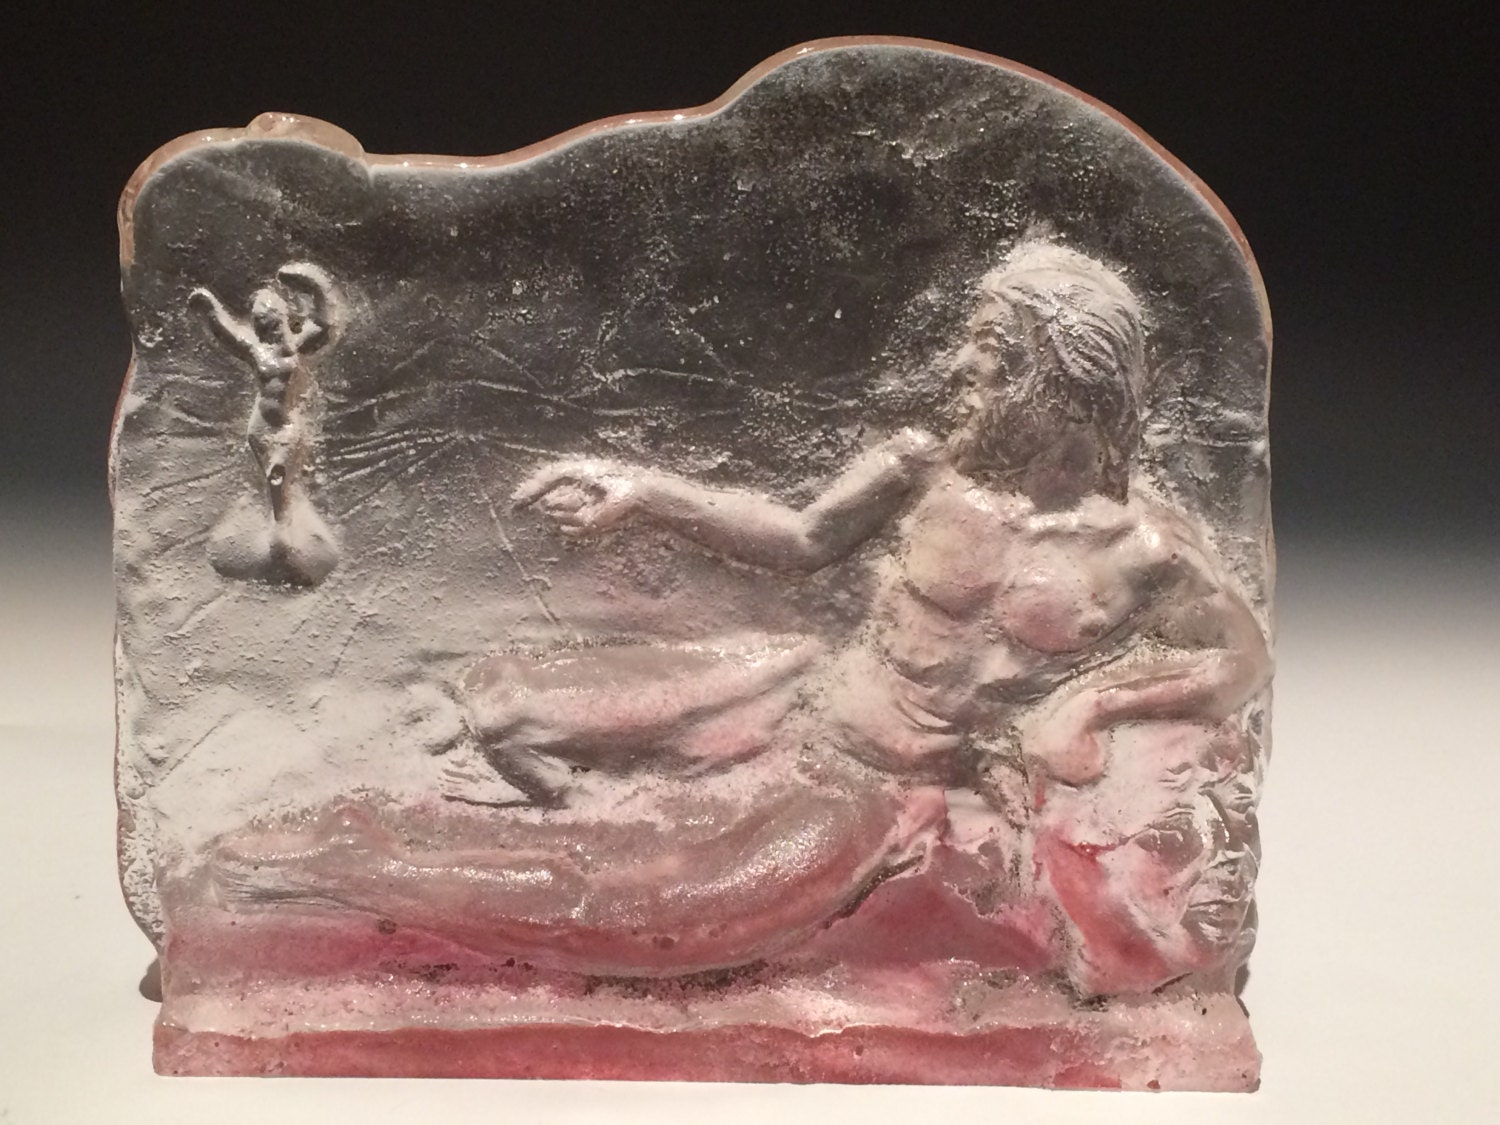 Cast glass bas relief figure sculpture naked man and woman